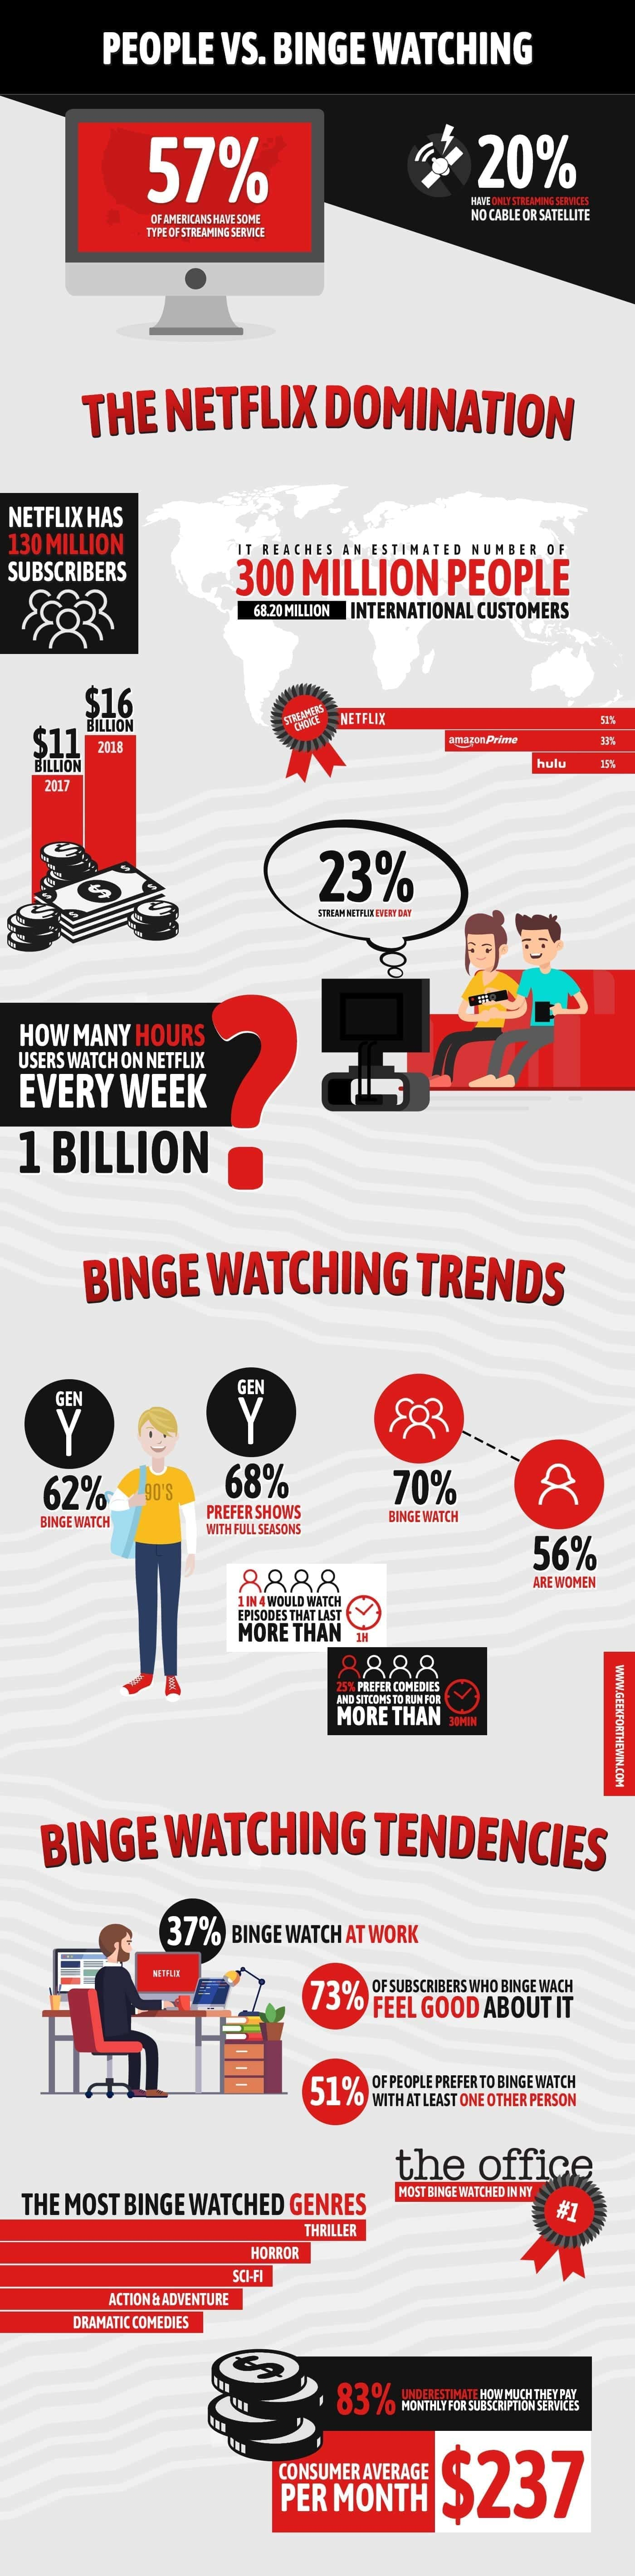 binge watching infographic